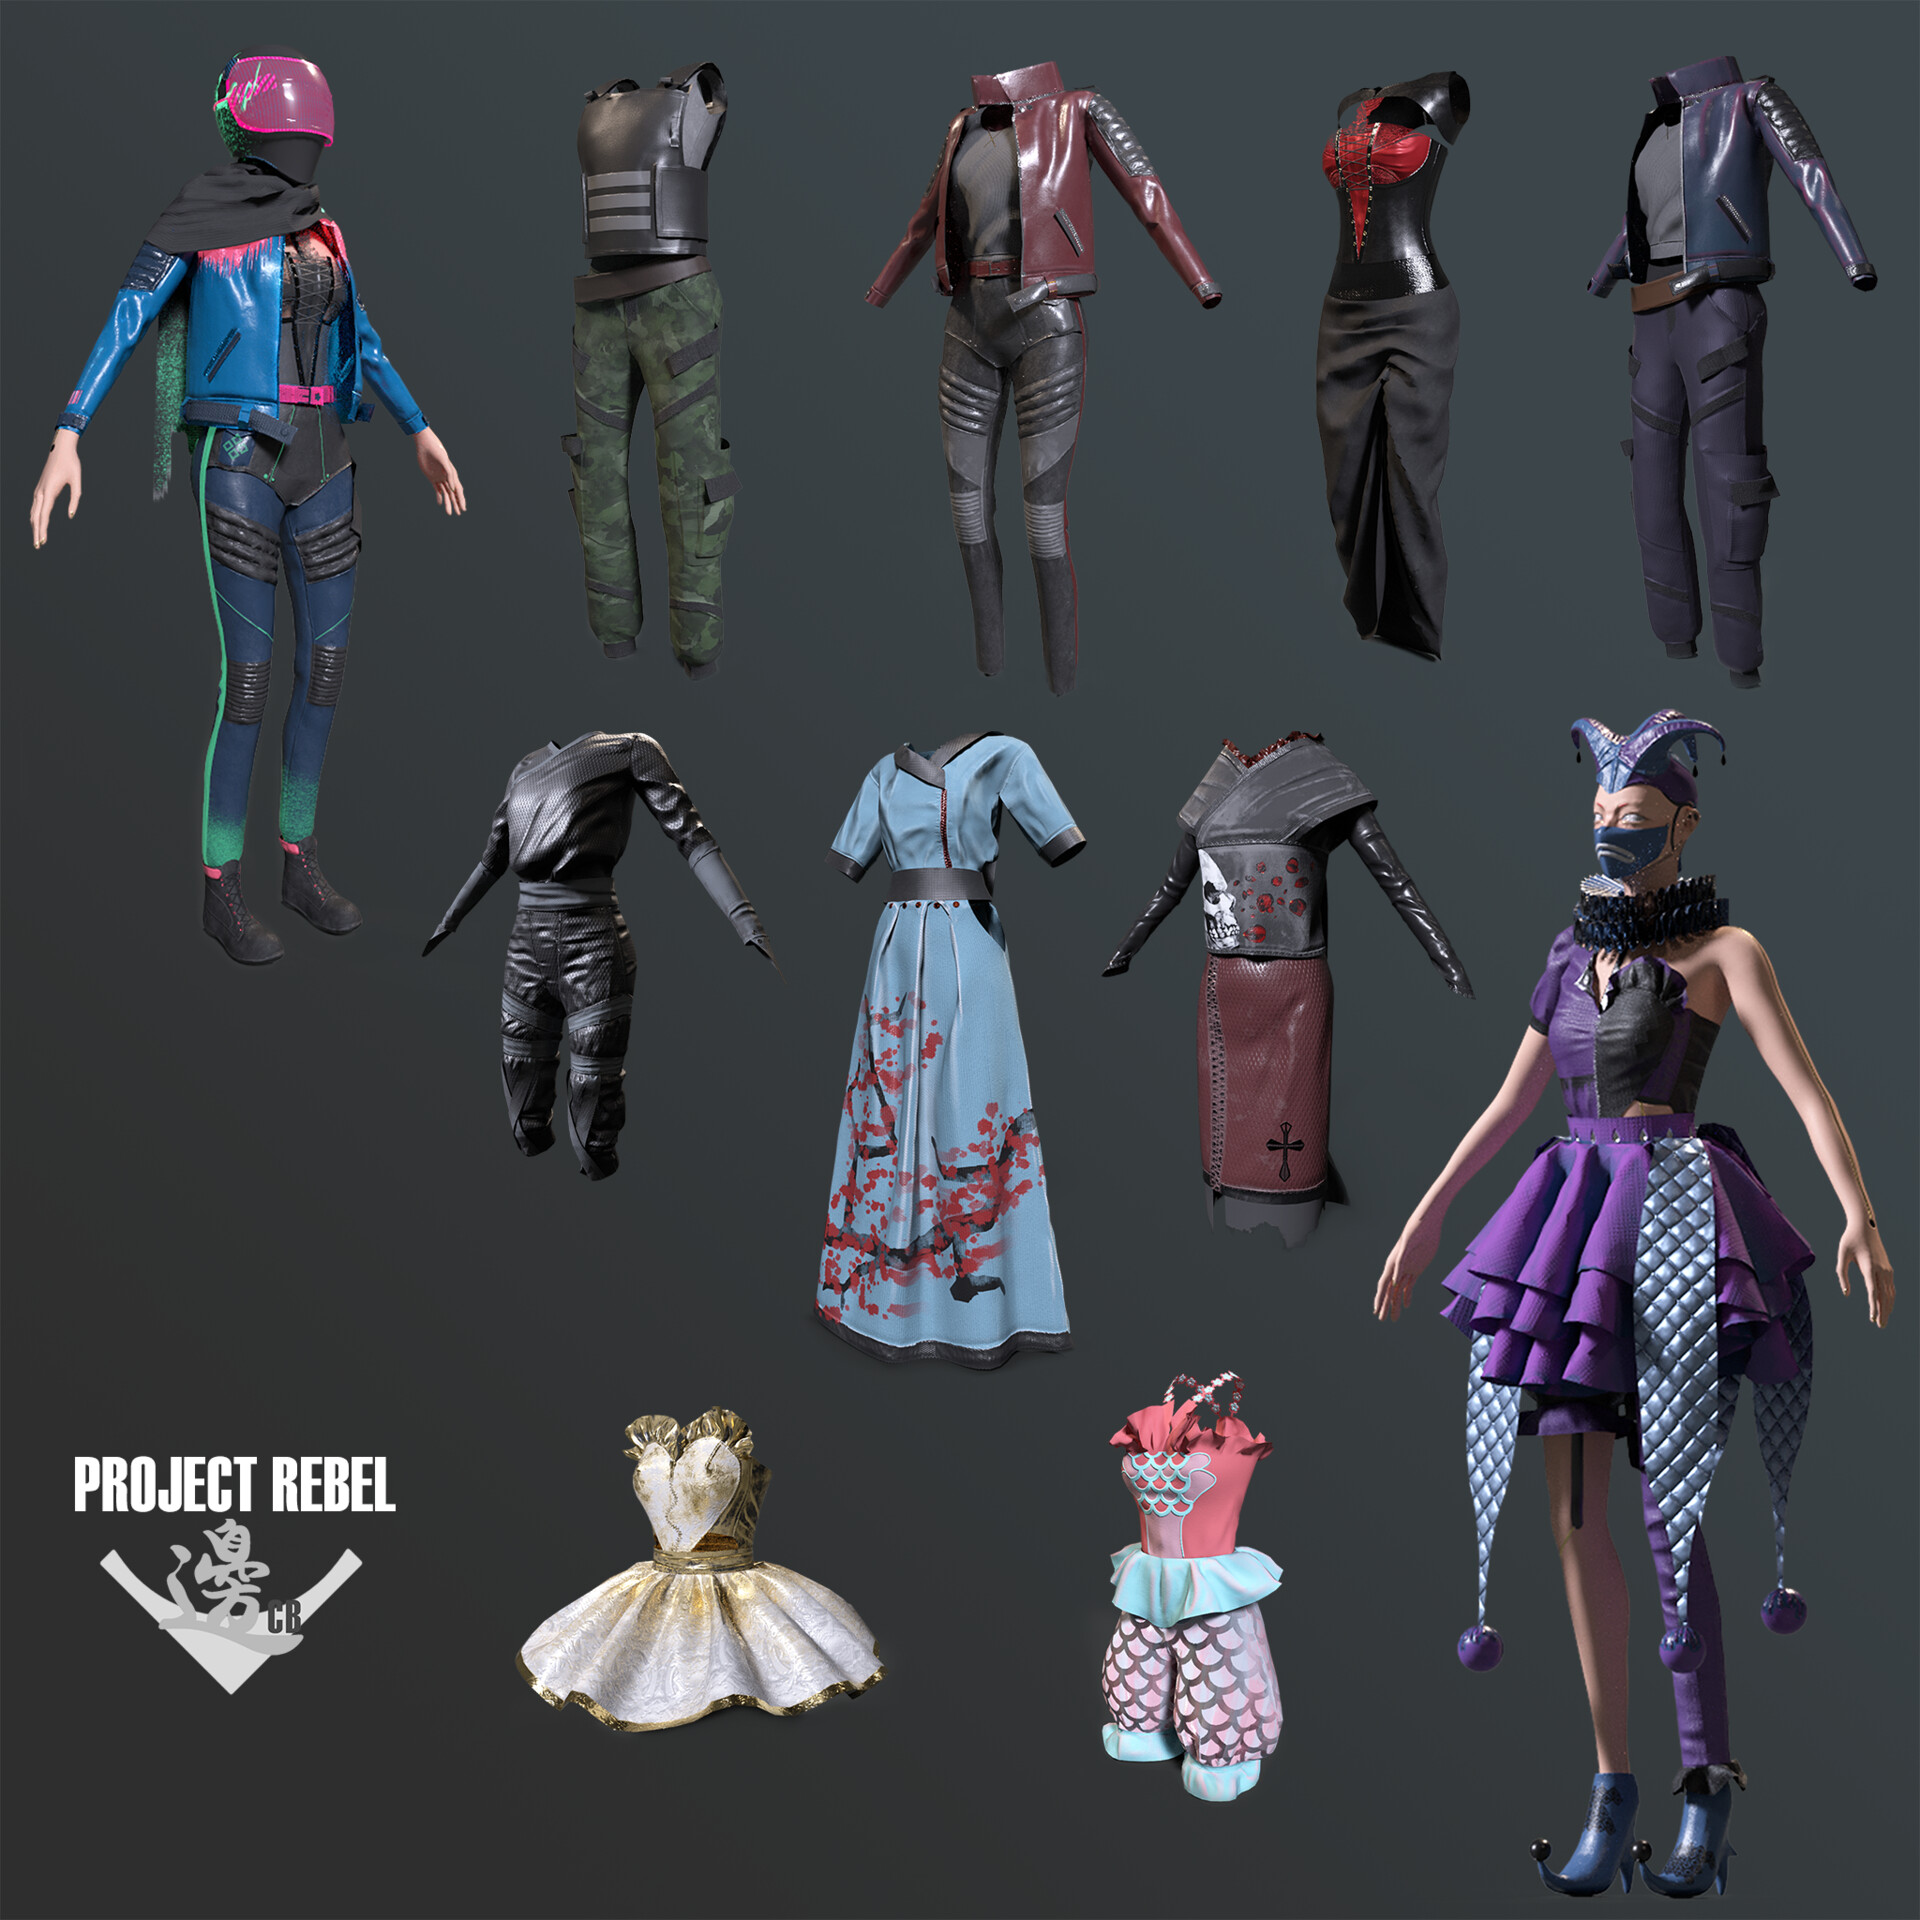 Collage of all the outfits in the three sets